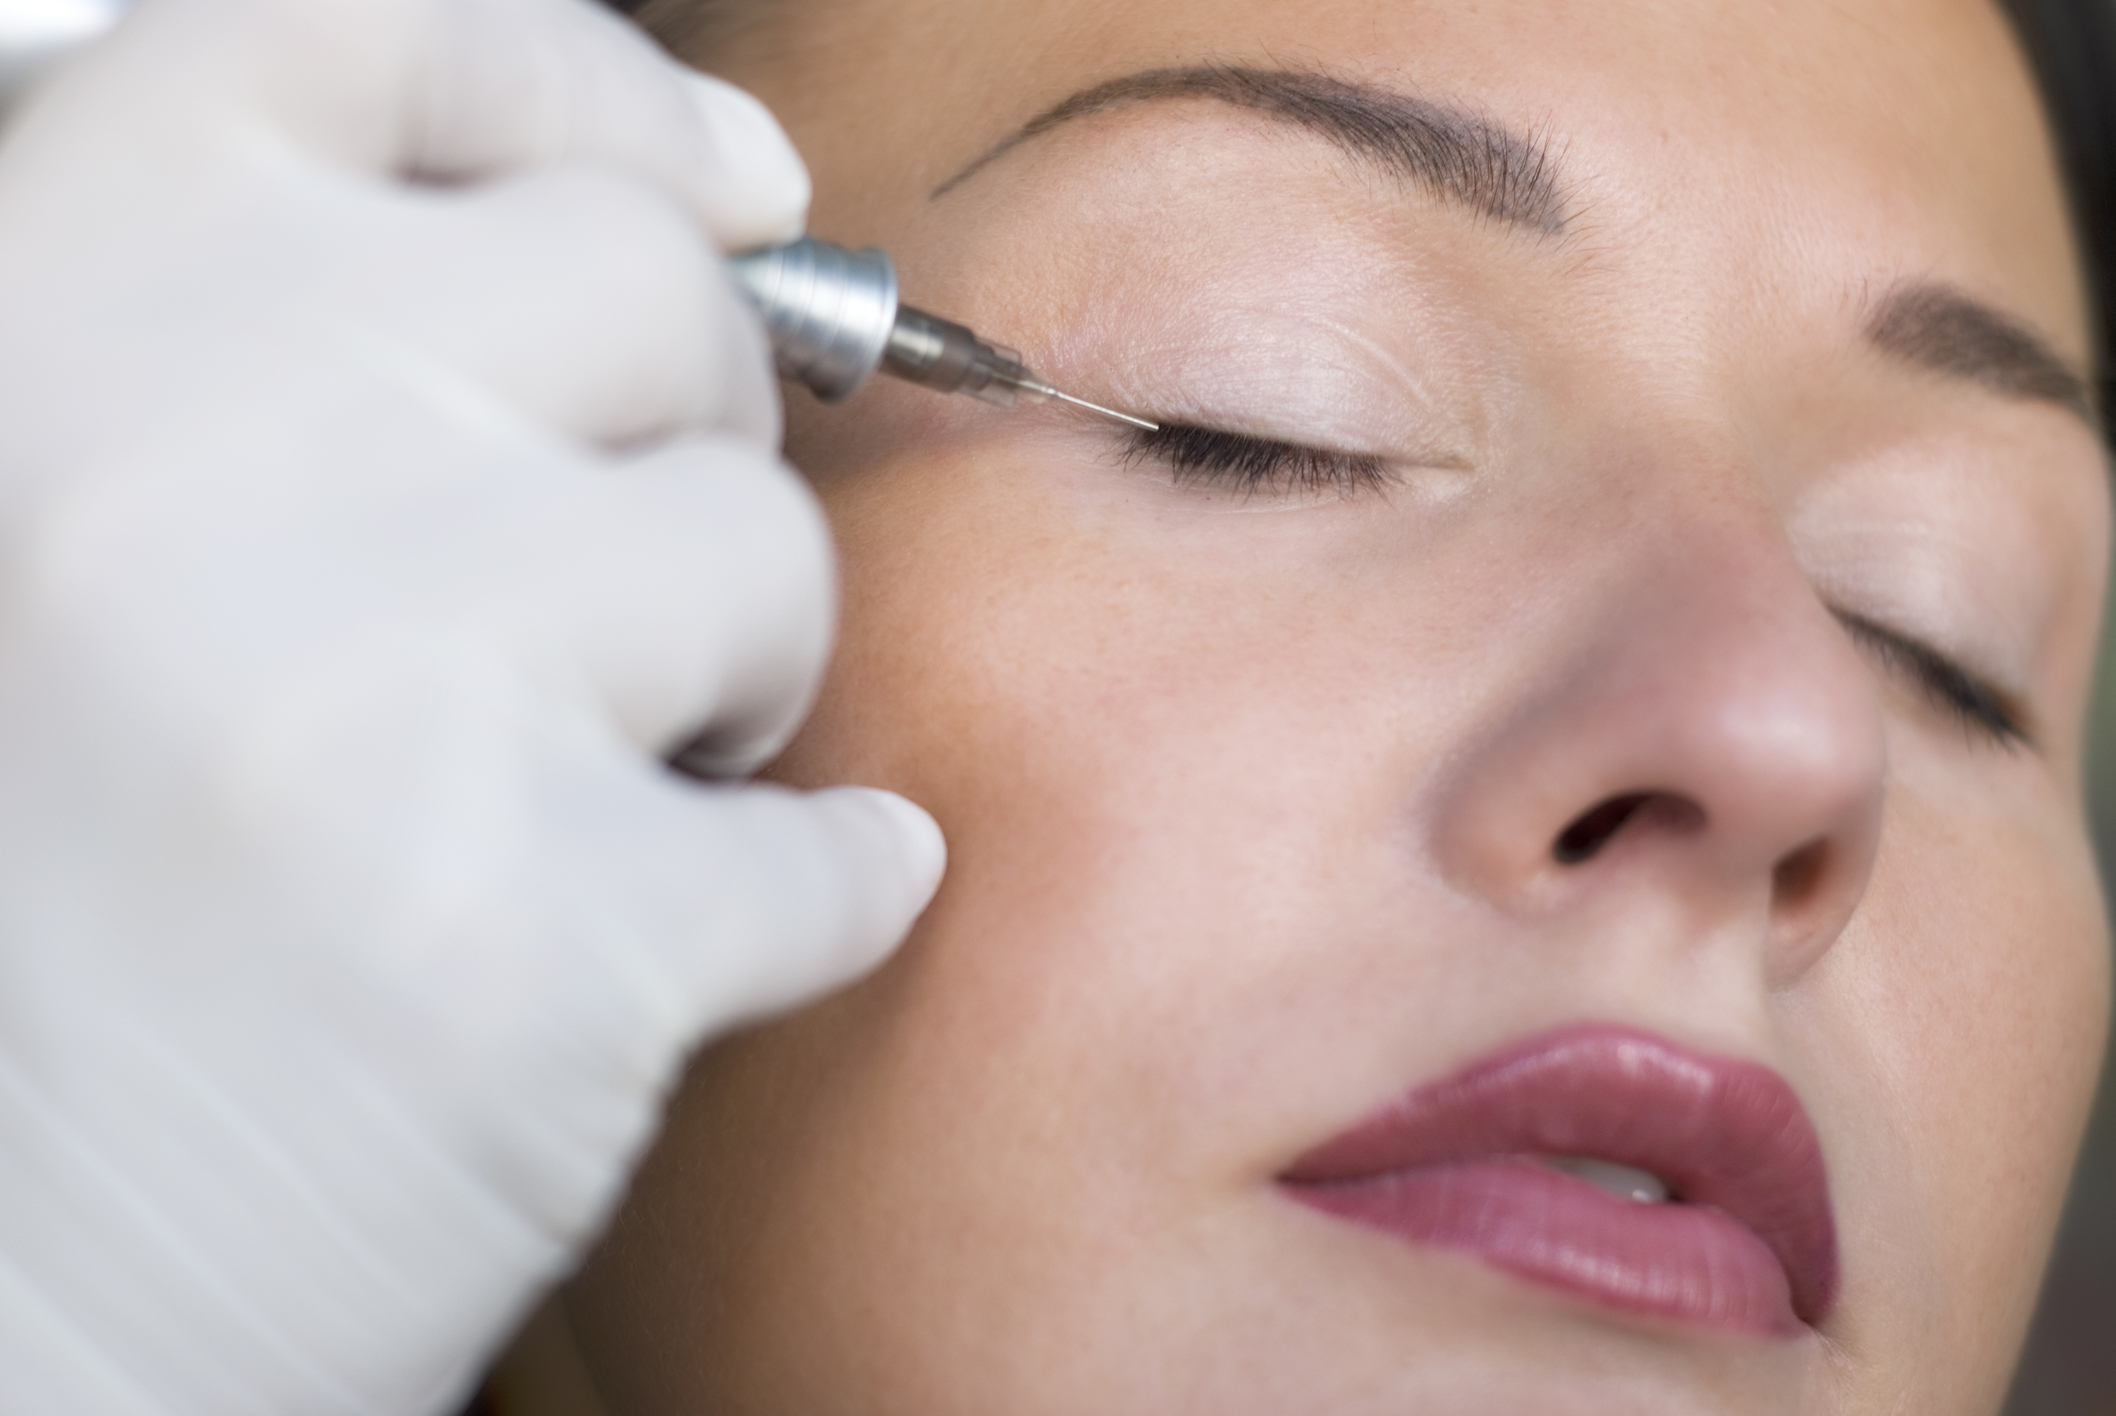 TATTOO, PERMANENT MAKEUP, AND SEMI-PERMANENT MAKE-UP THE